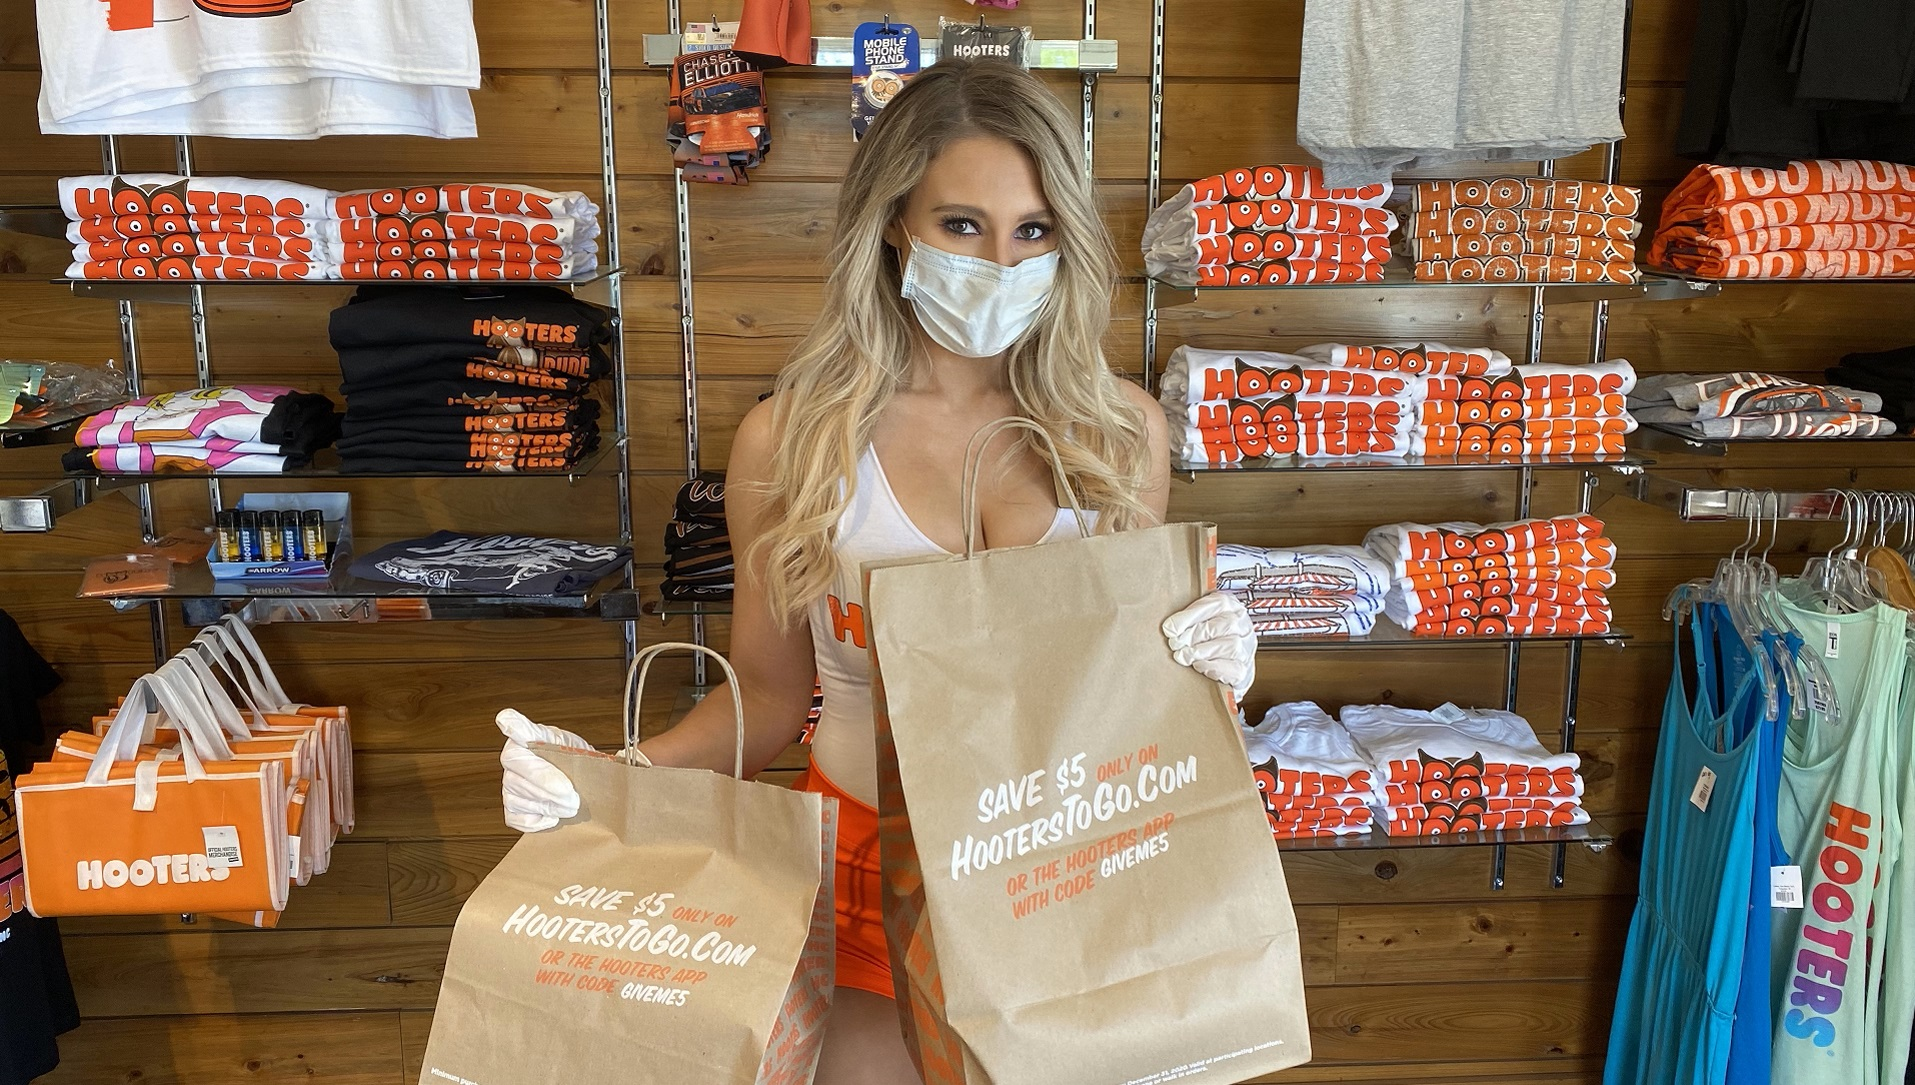 Hooters Girl Takeout Delivery Food